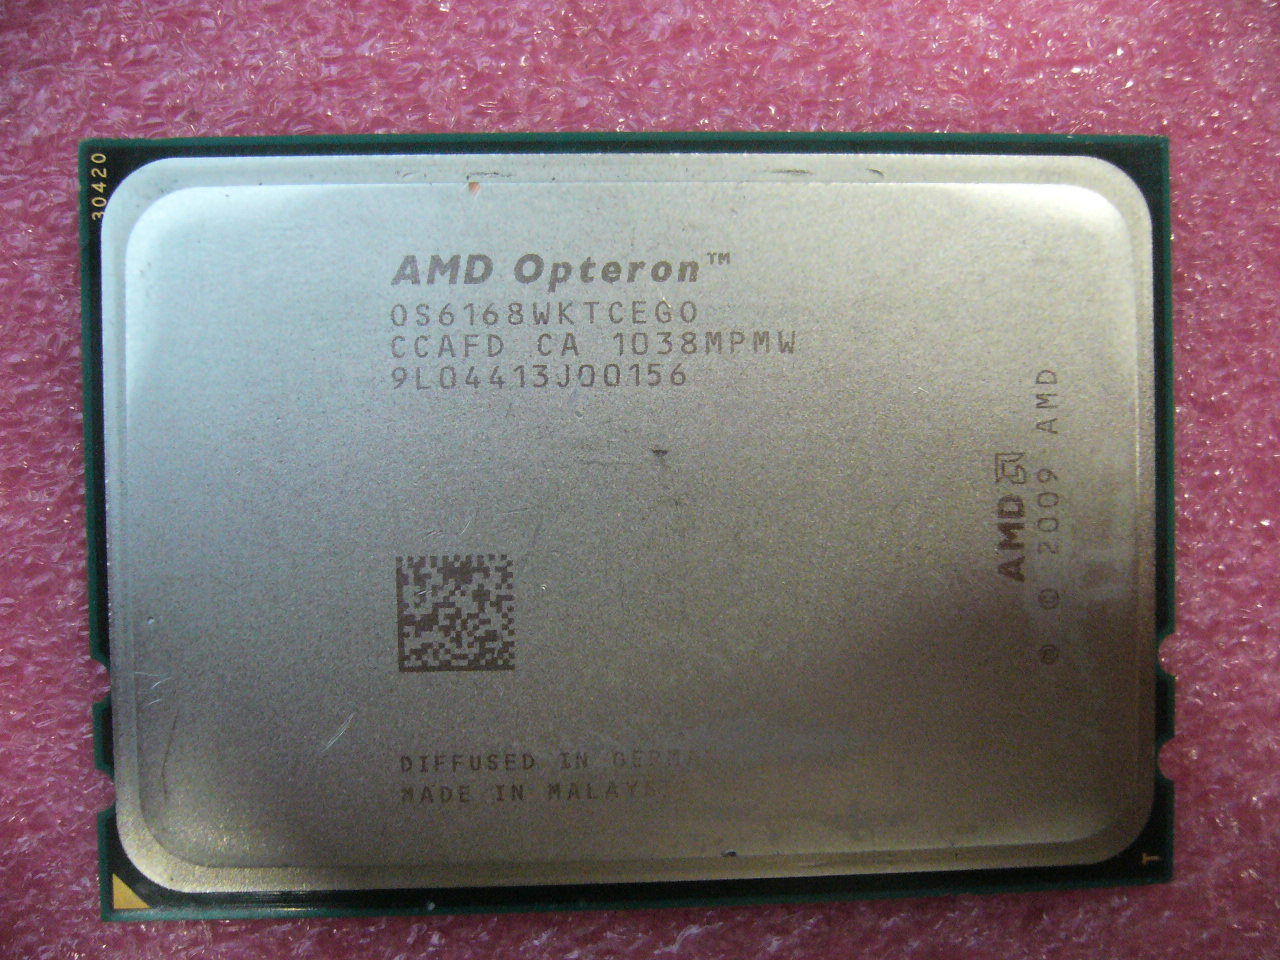 QTY 1x AMD Opteron 6168 1.9 GHz Twelve Core (OS6168WKTCEGO) CPU Tested G34